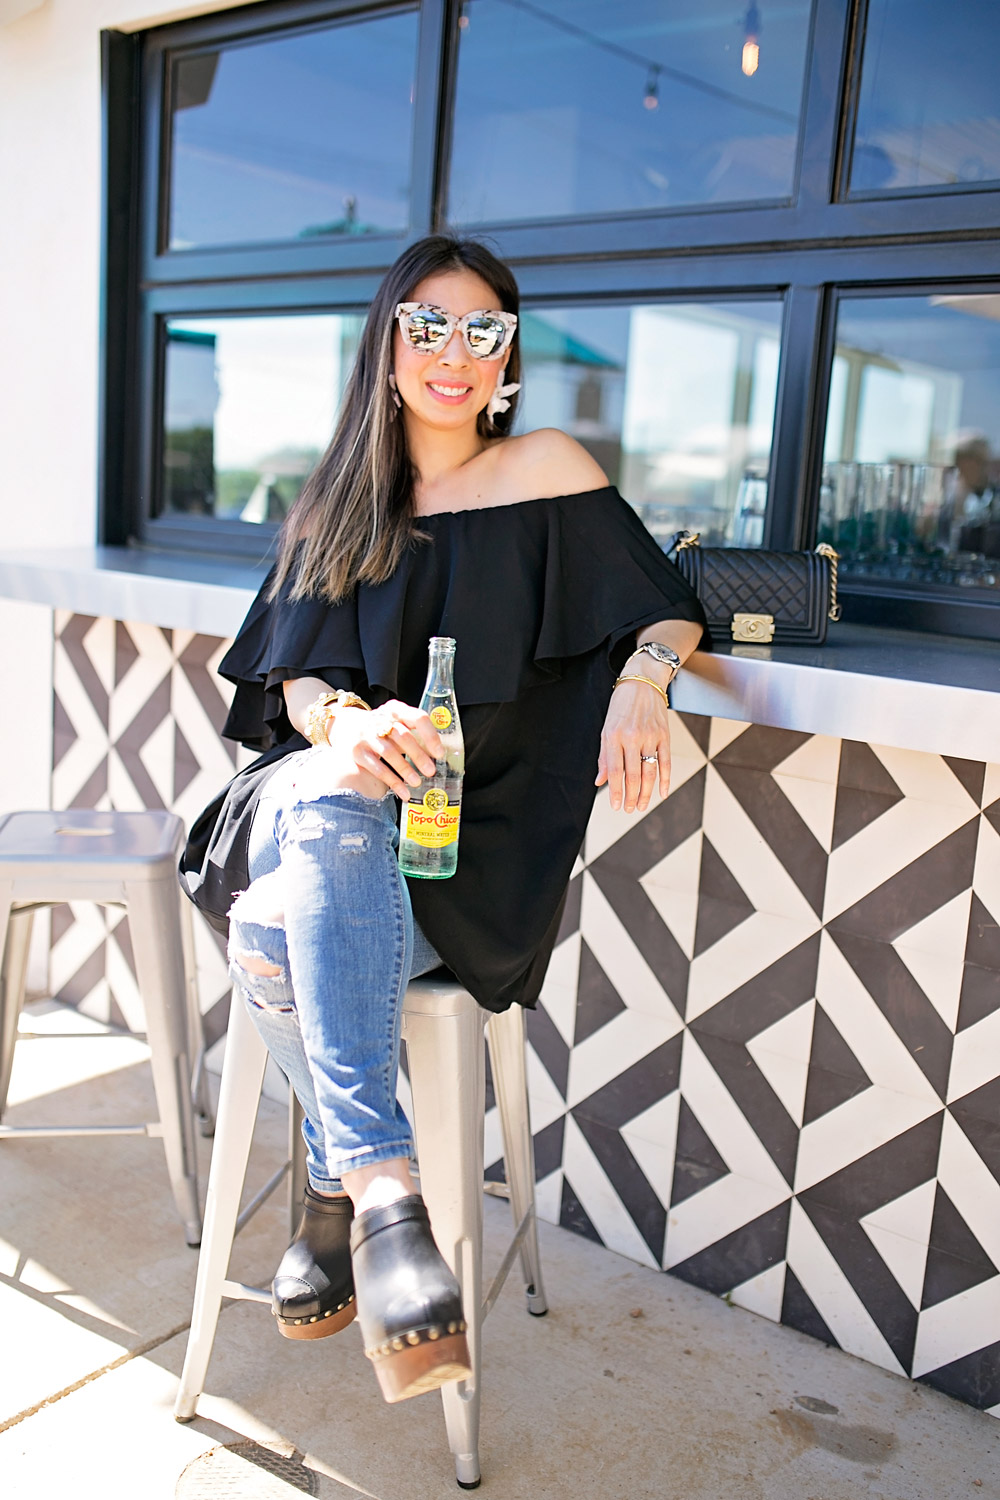 off the shoulder dress and ripped jeans at taco heads in fort worth